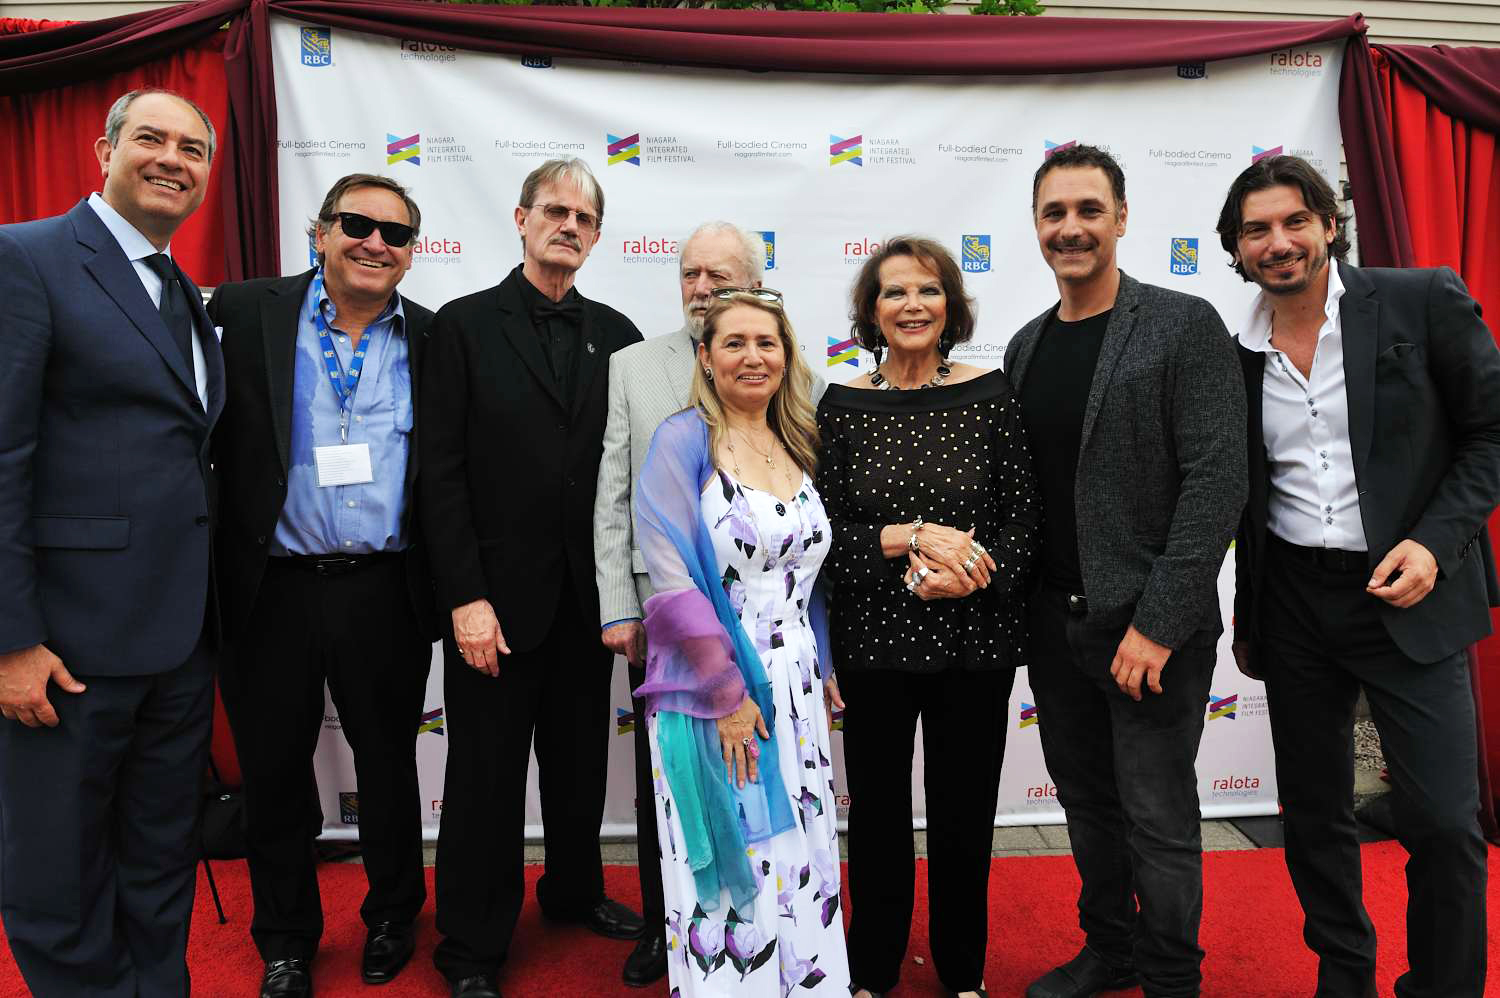 NIFF 2016 - photo: Carrie Lee/Clee